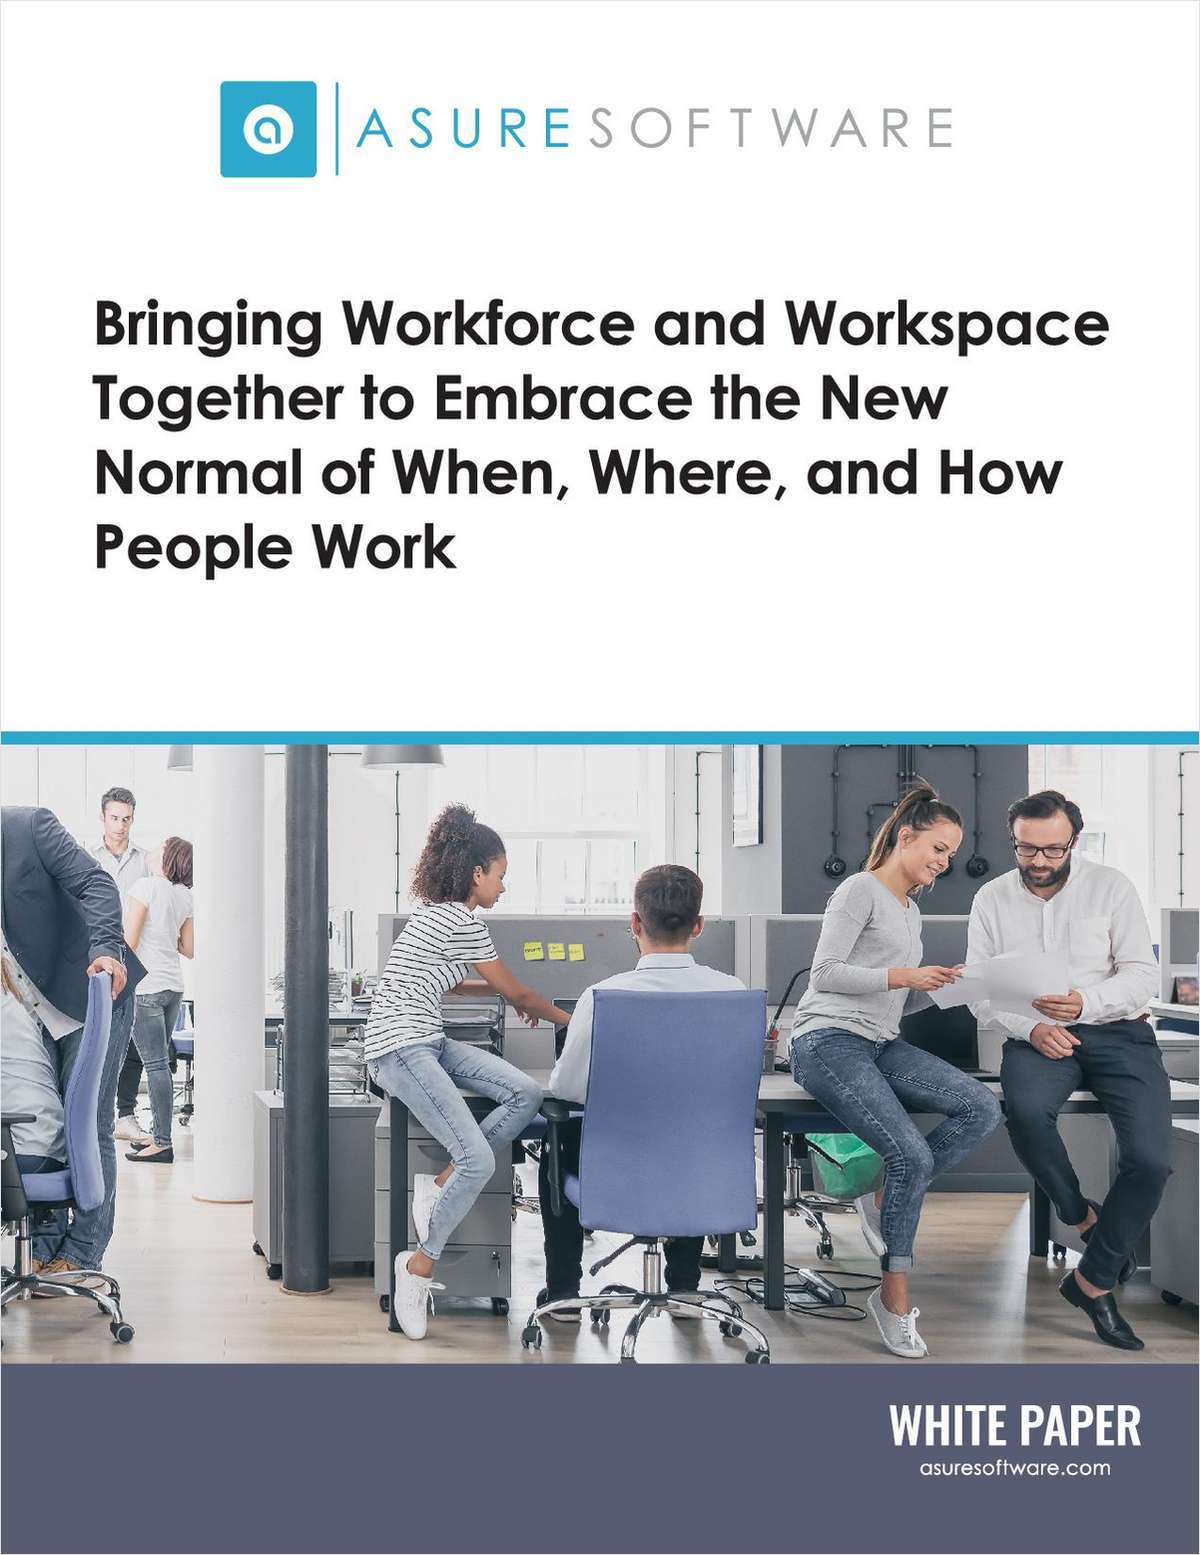 Bringing Workforce and Workspace Together to Embrace the New Normal of When, Where, and How People Work - UK